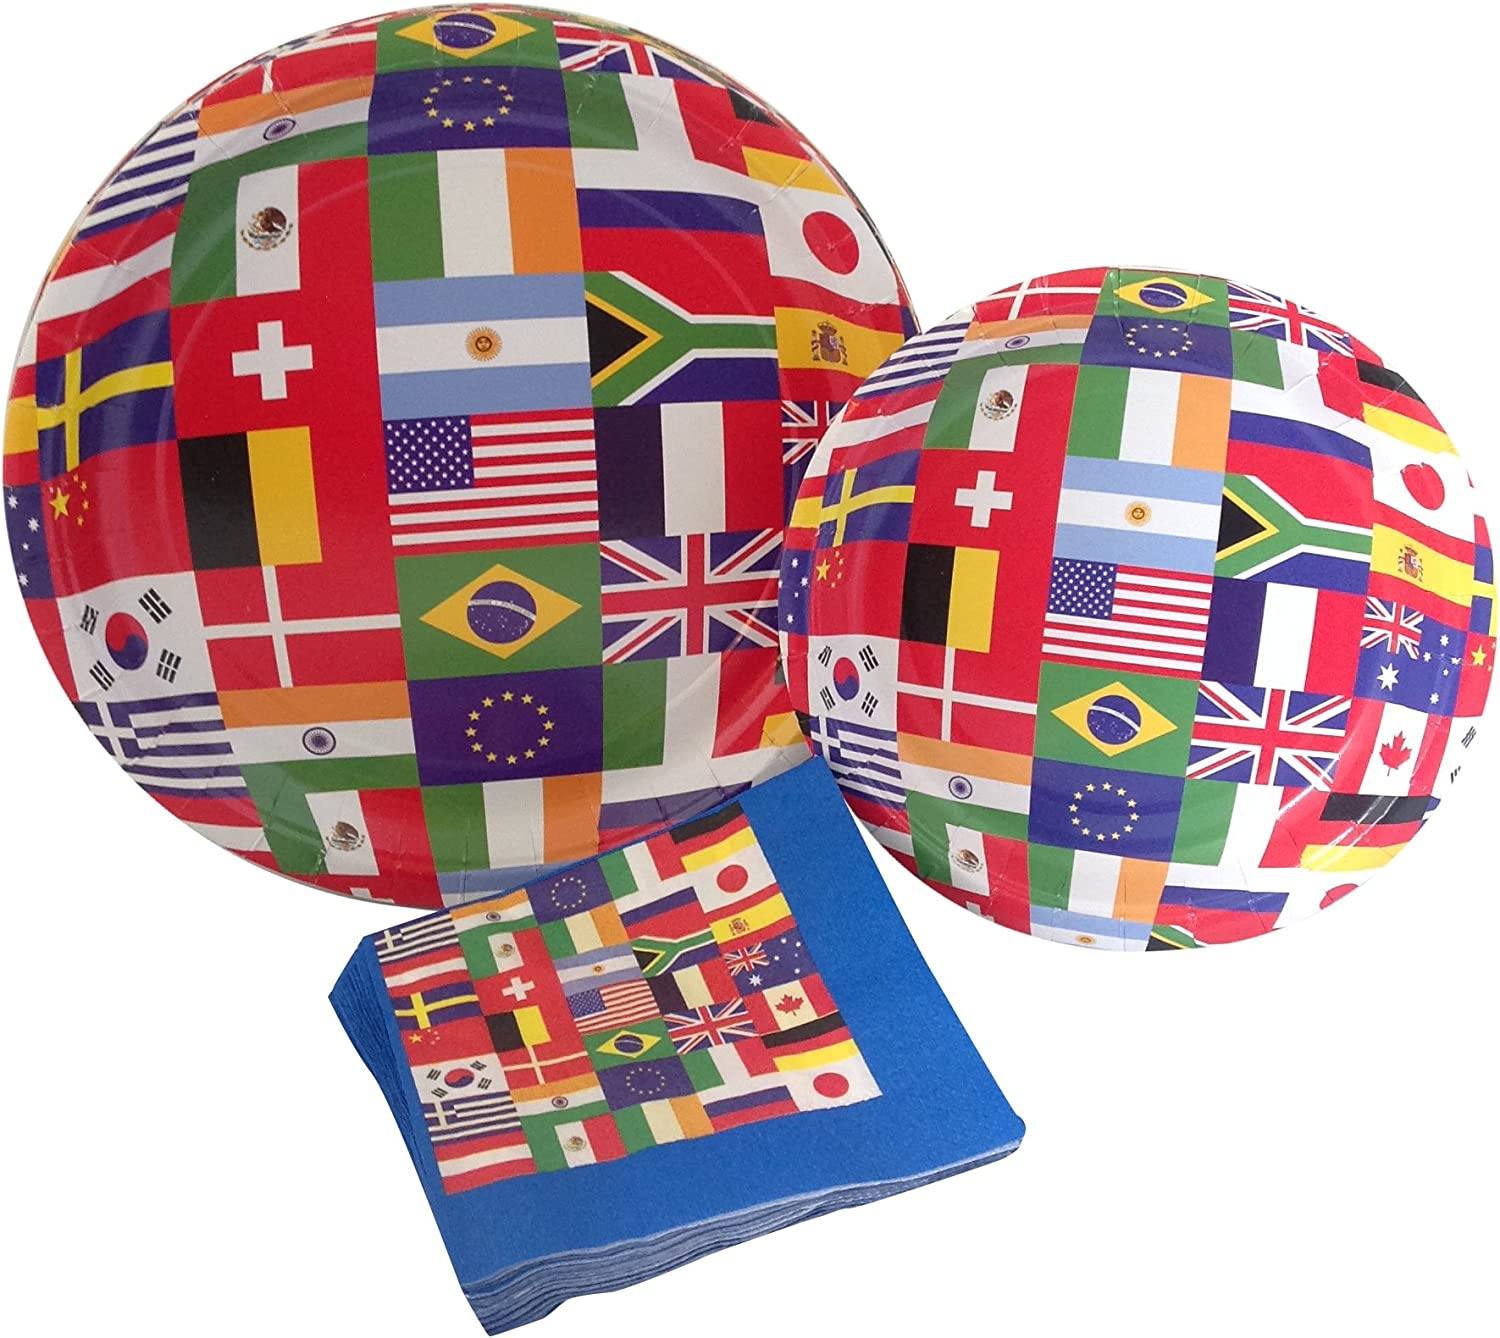 International World Flags Party Supply Pack! Bundle Includes Paper Plates & Napkins for 8 Guests